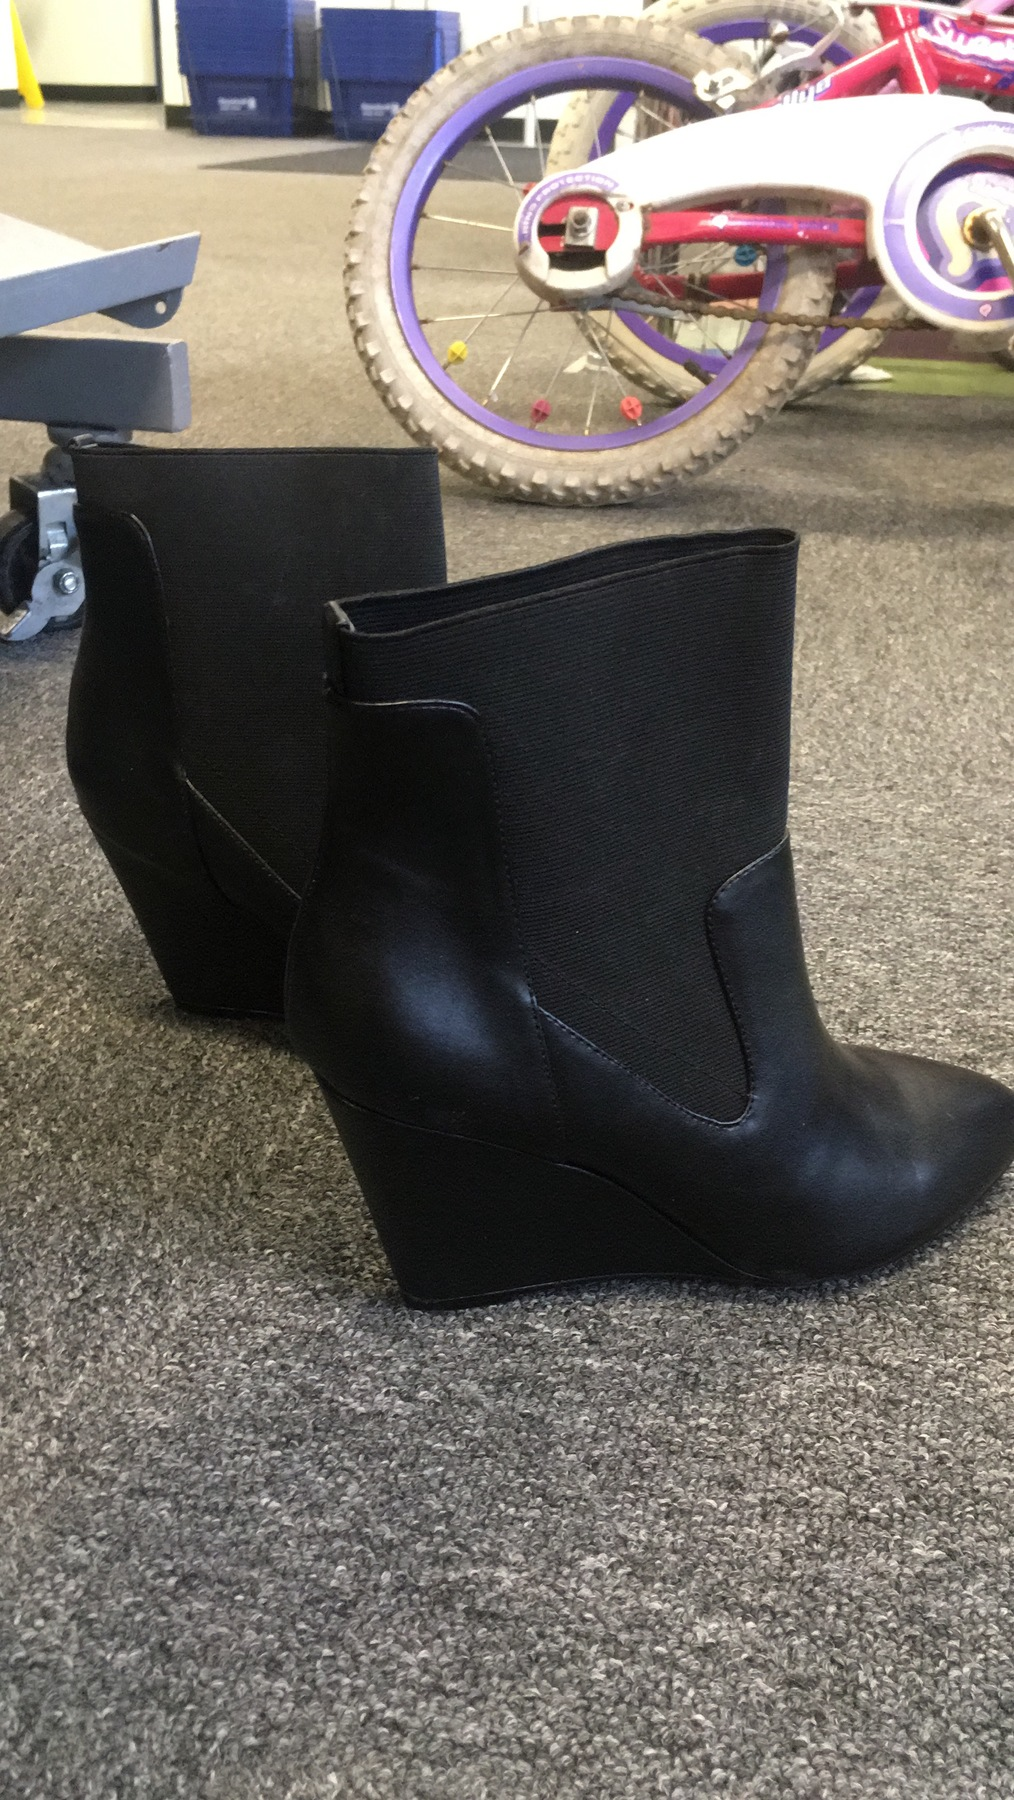 black wedge booties found at Kings Highway Goodwill